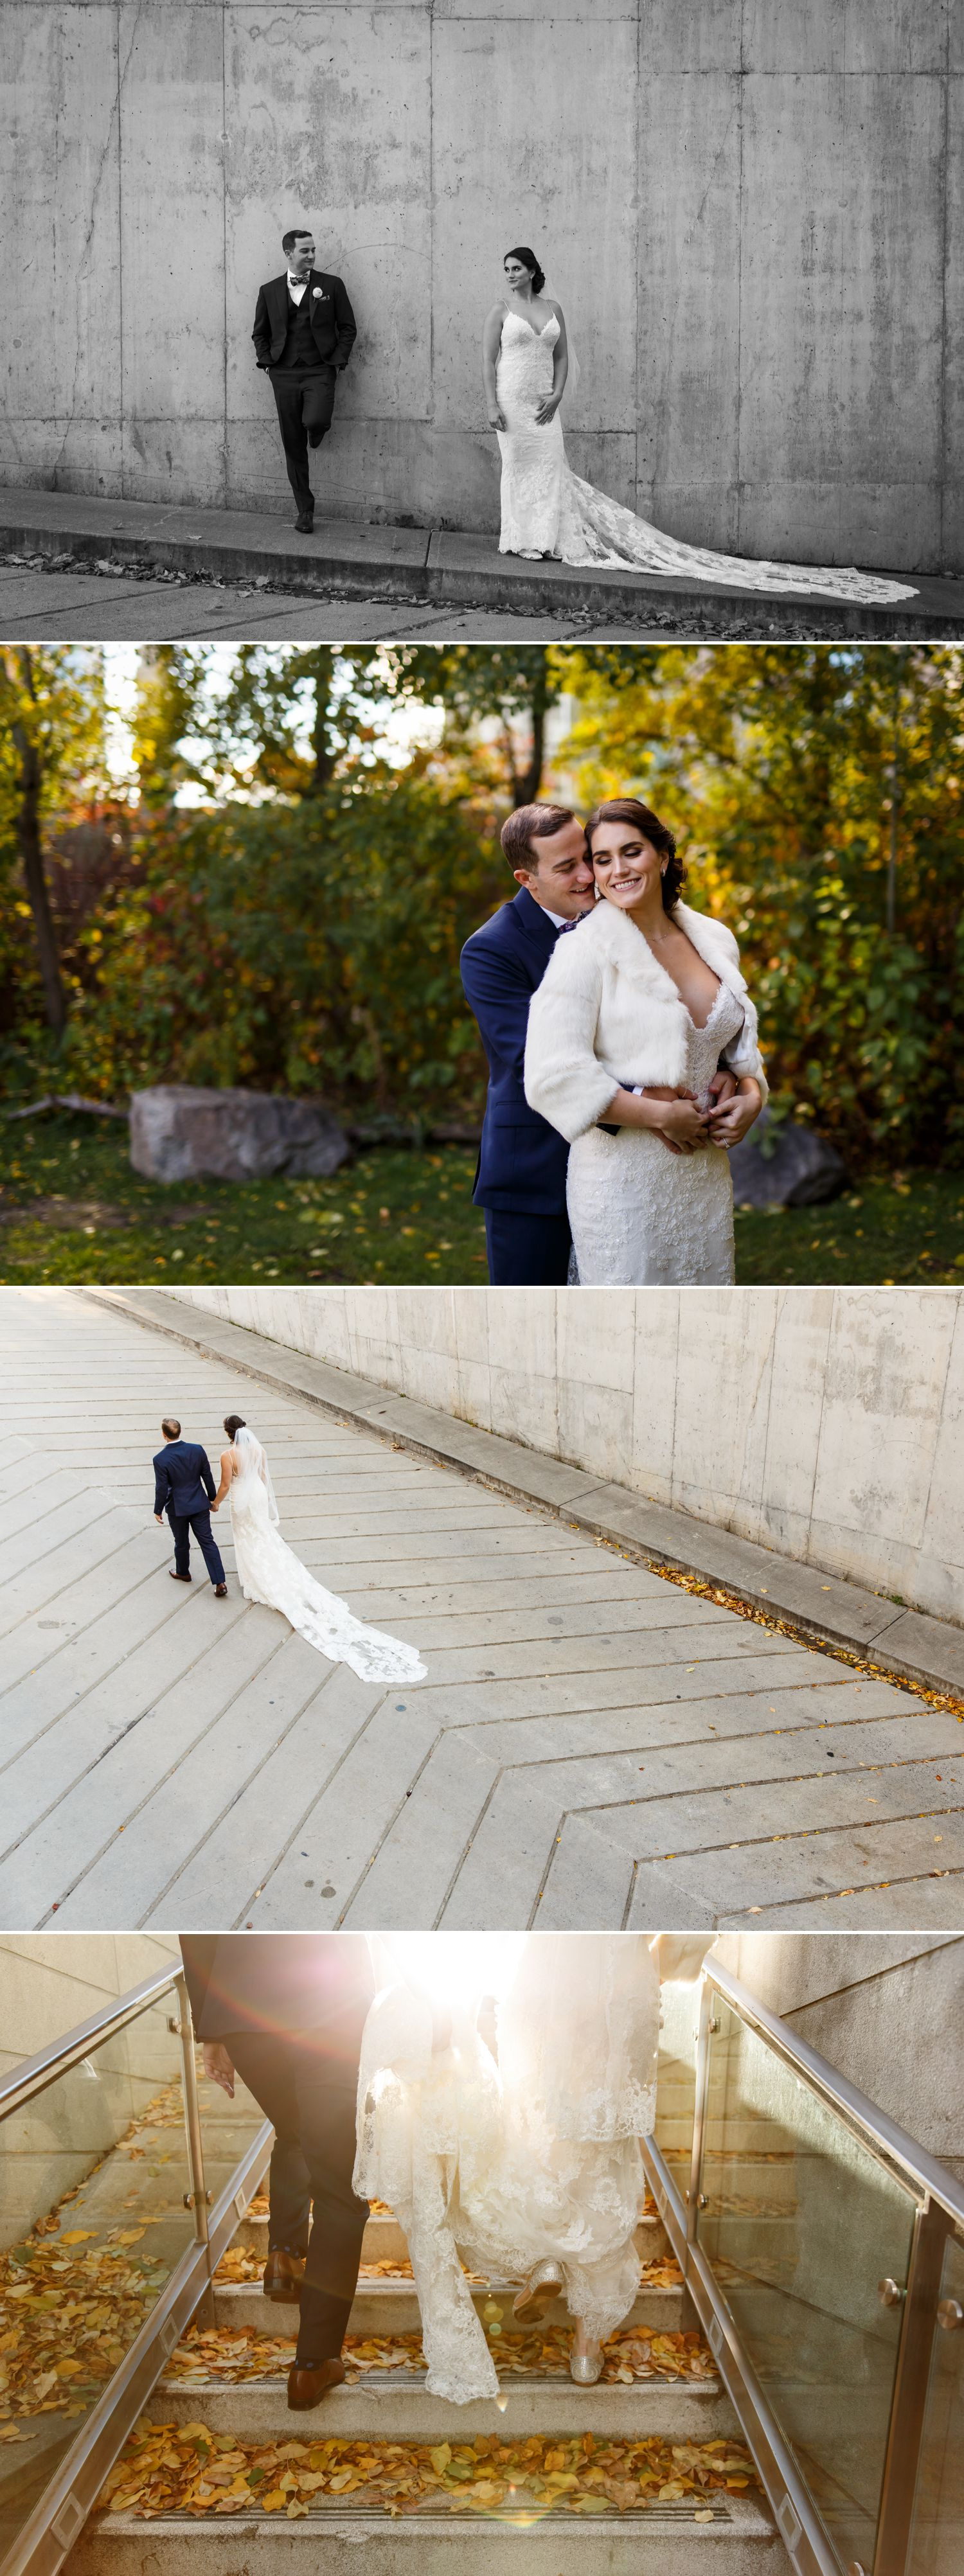 Portraits of the bride and groom taken before their wedding ceremony at the Museum of Nature in downtown Ottawa